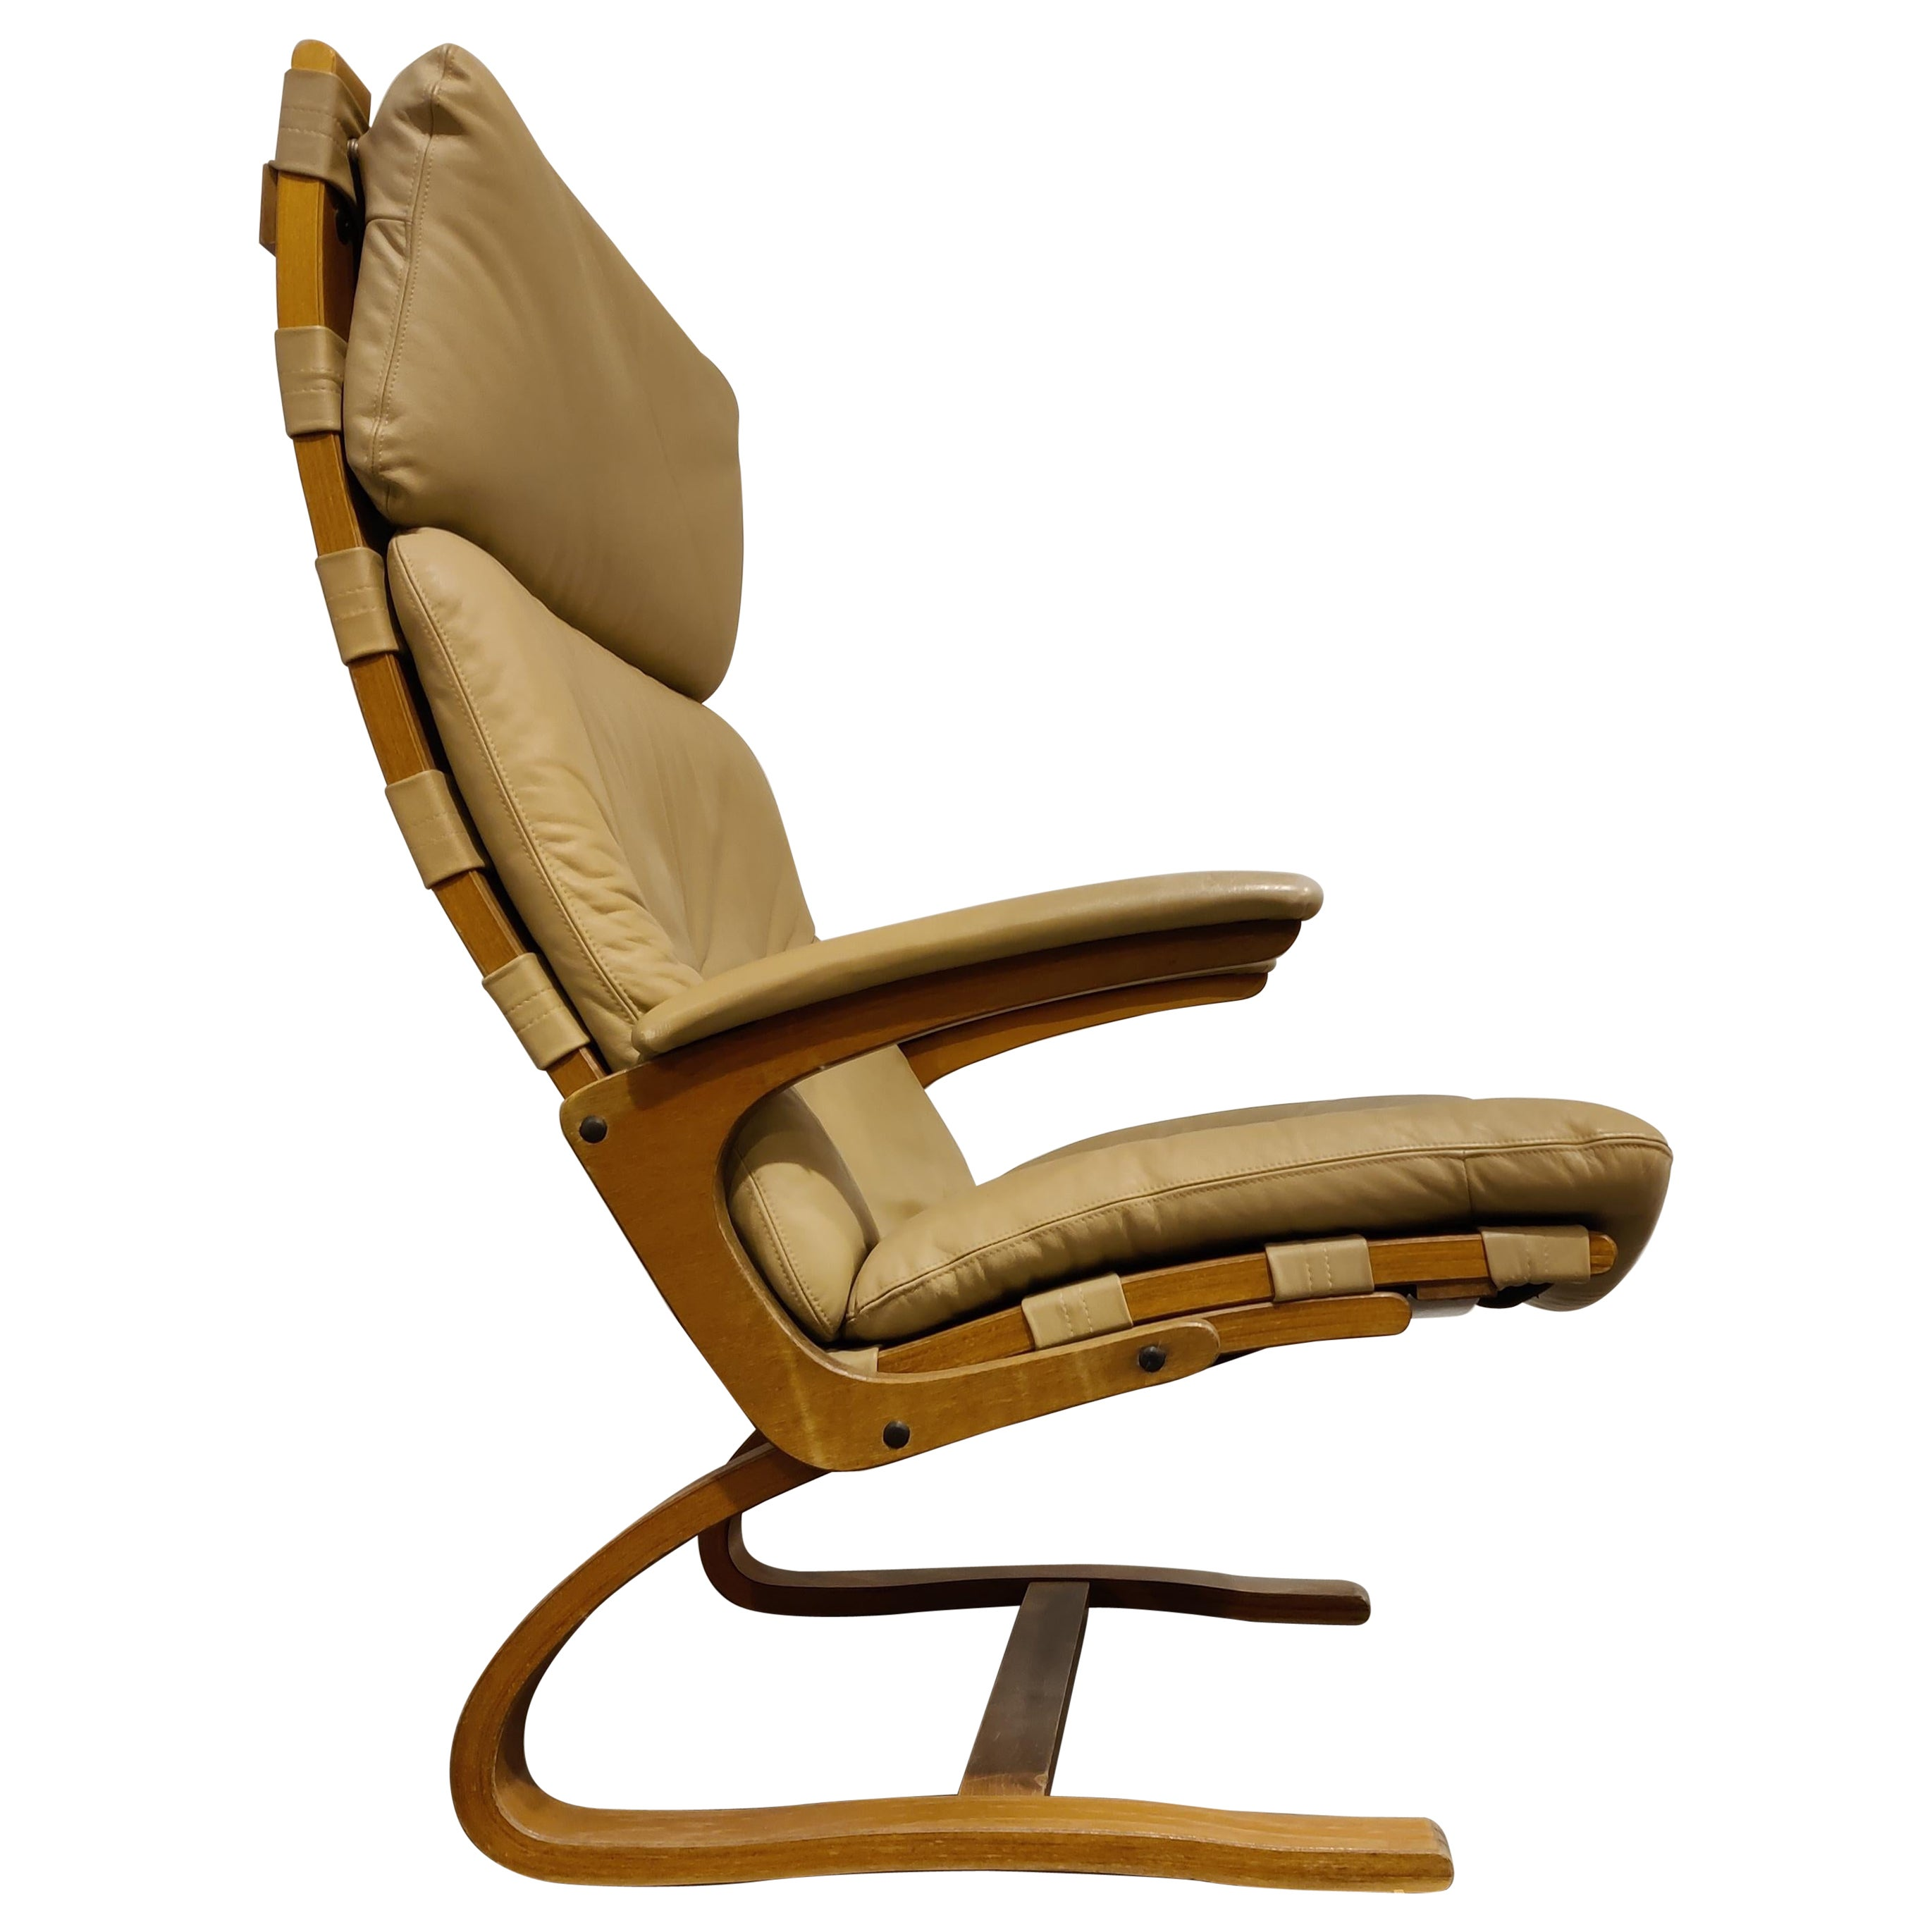 Vintage Leather Lounge Chair by Ingmar Relling, 1970s